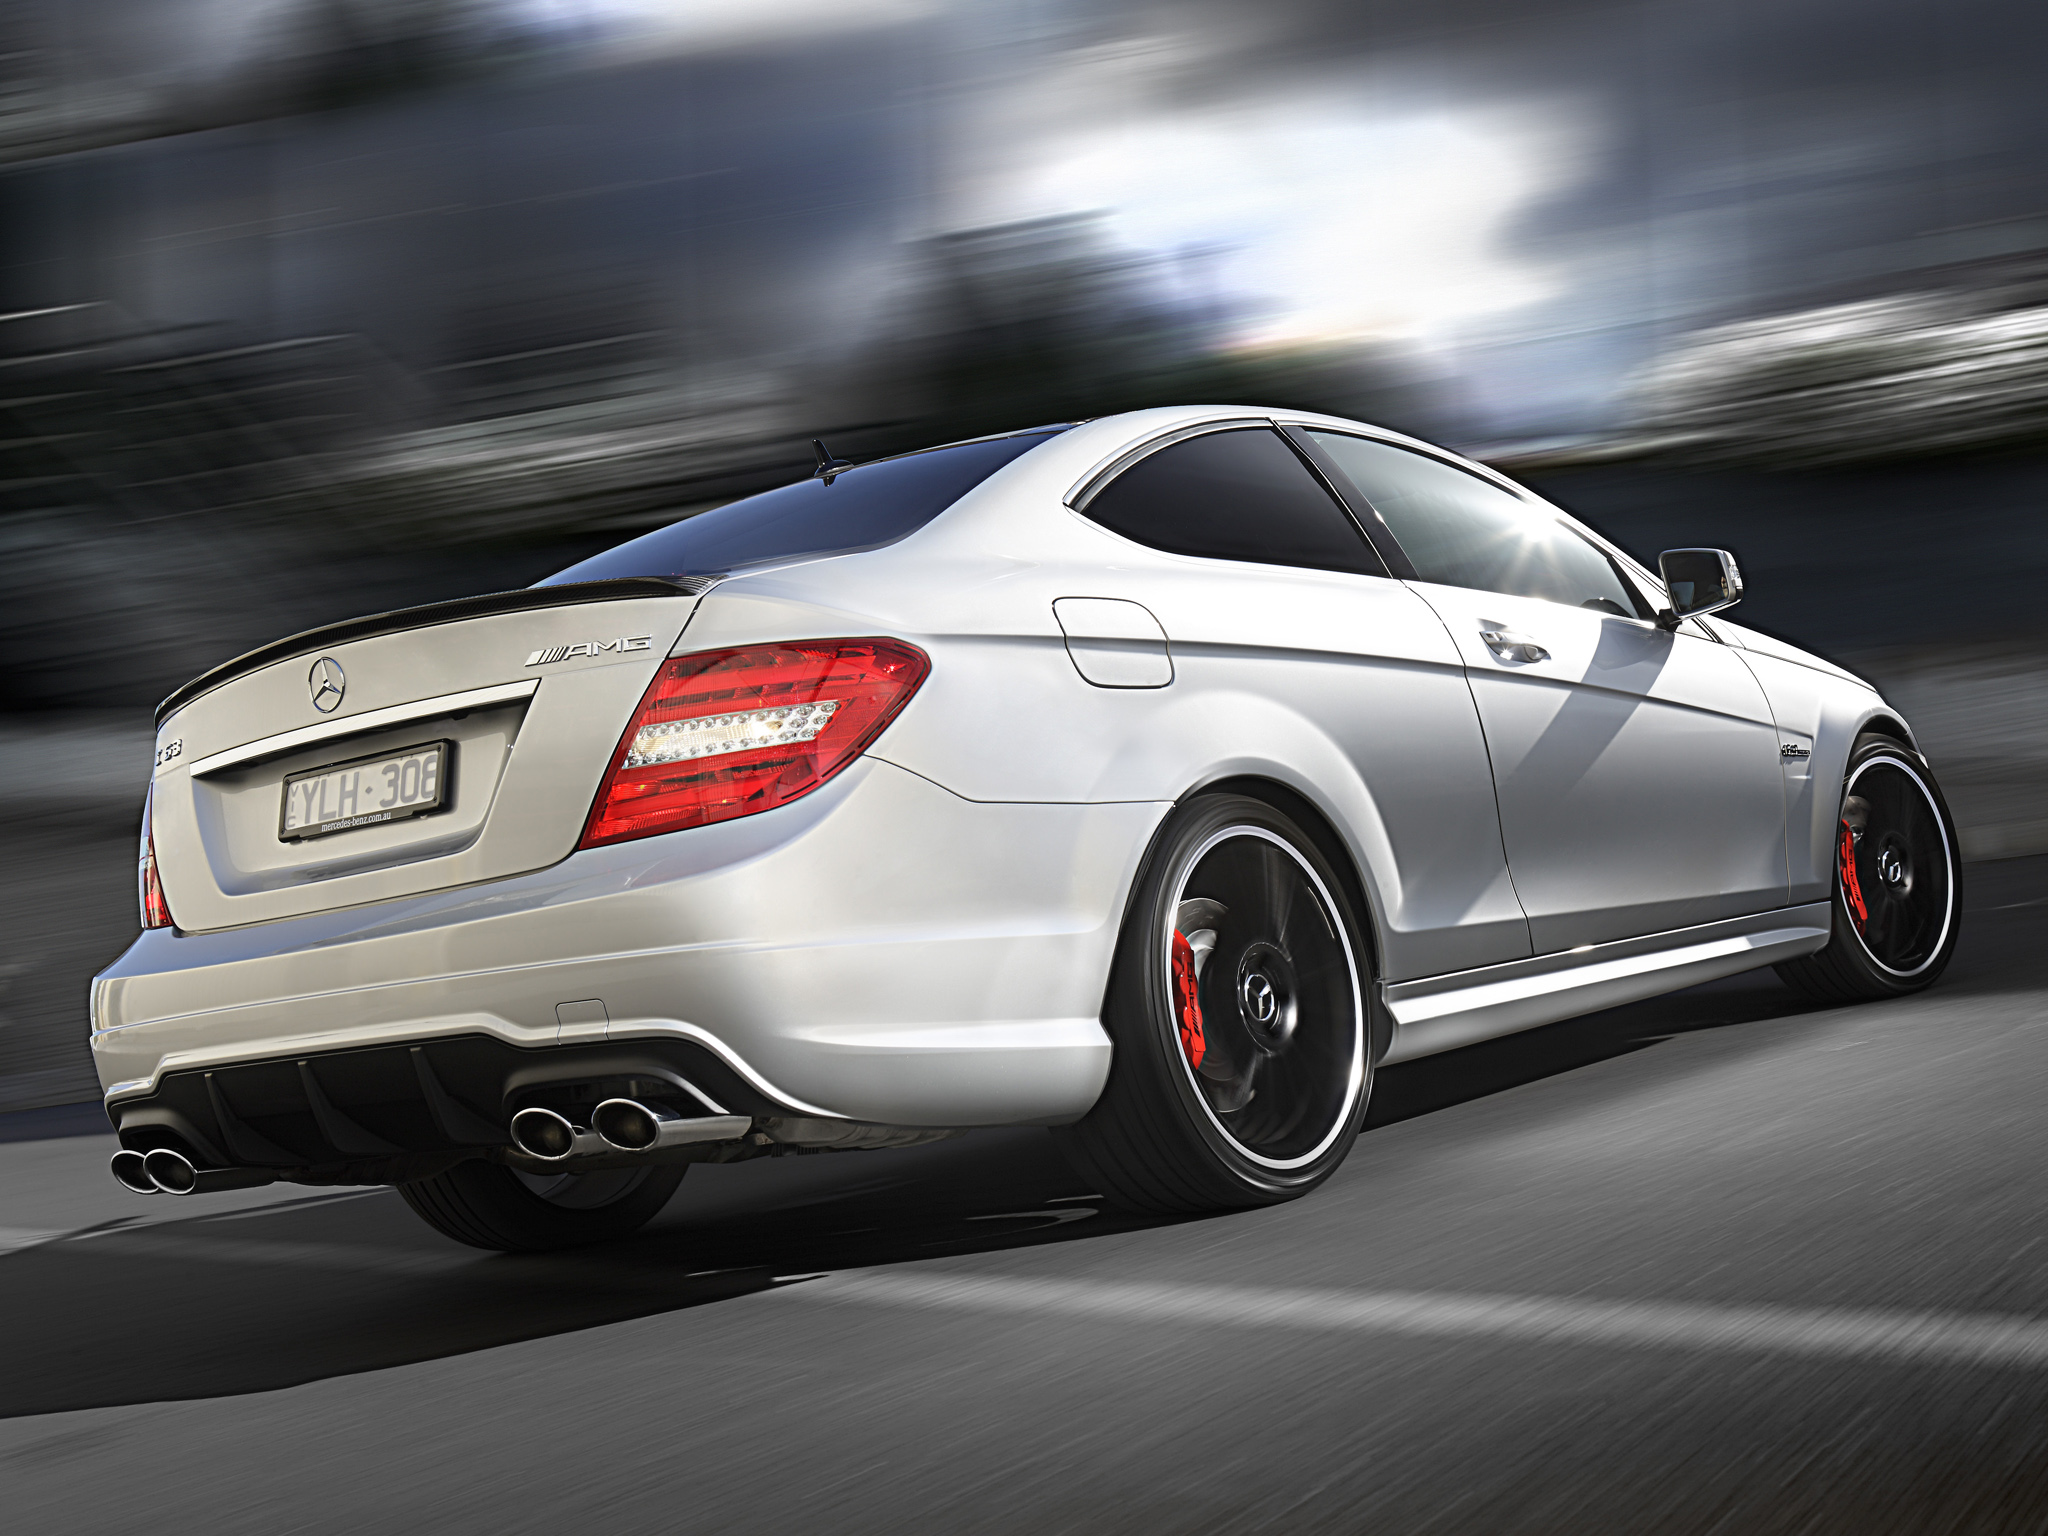 Mercedes benz c63 amg coupe picture 96462 mercedes for C63 mercedes benz amg